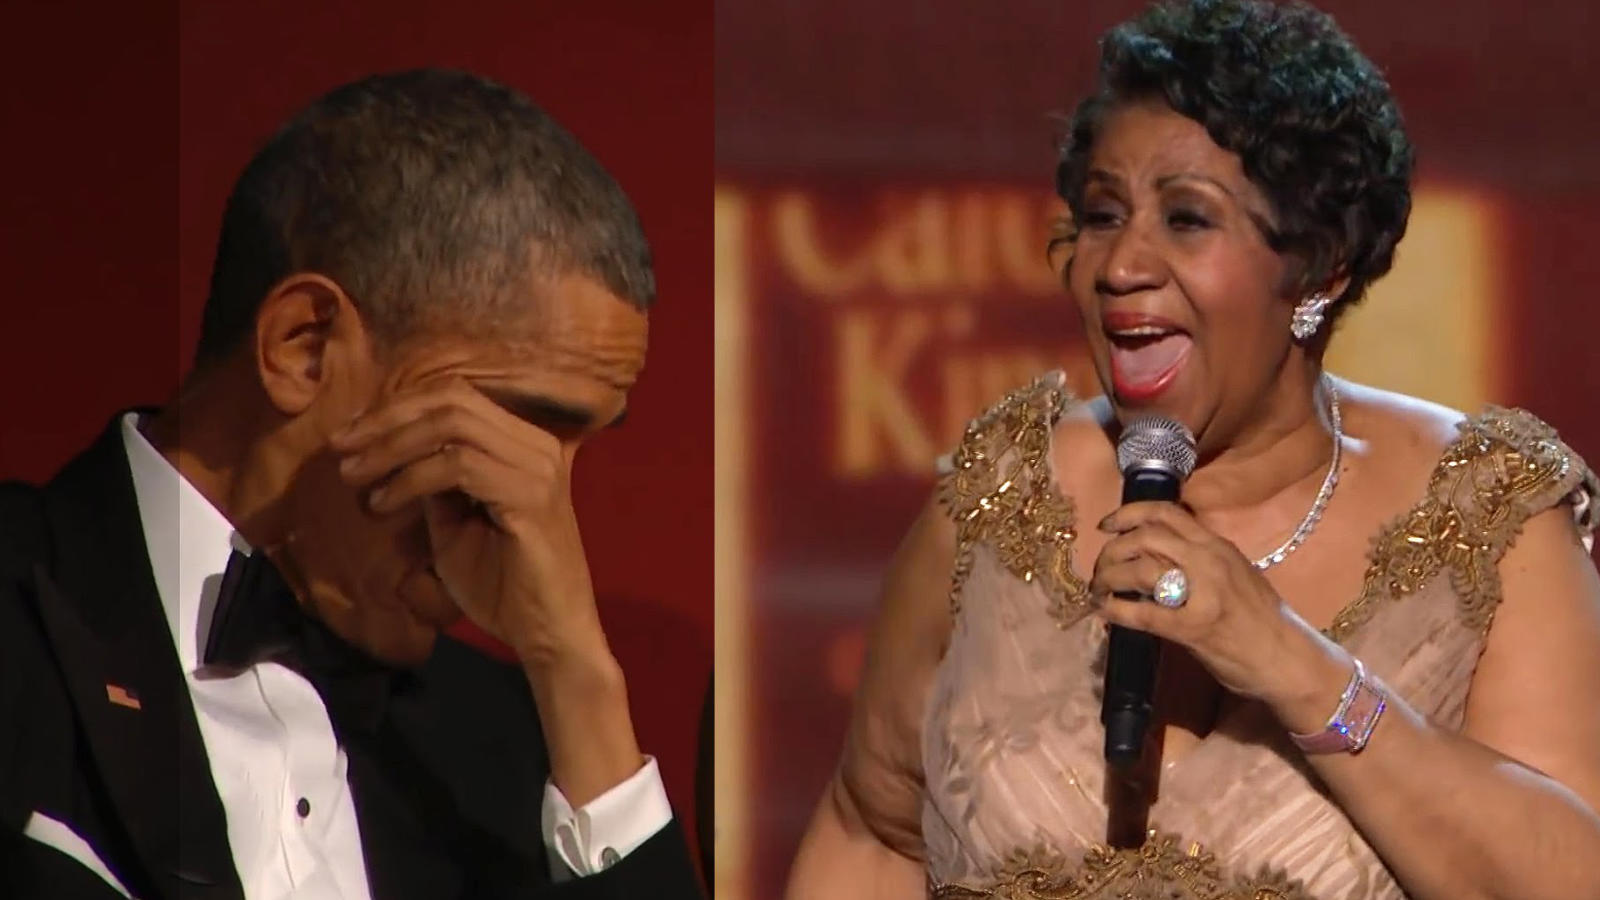 Aretha Franklin and Barack Obama Image: The Daily Dot